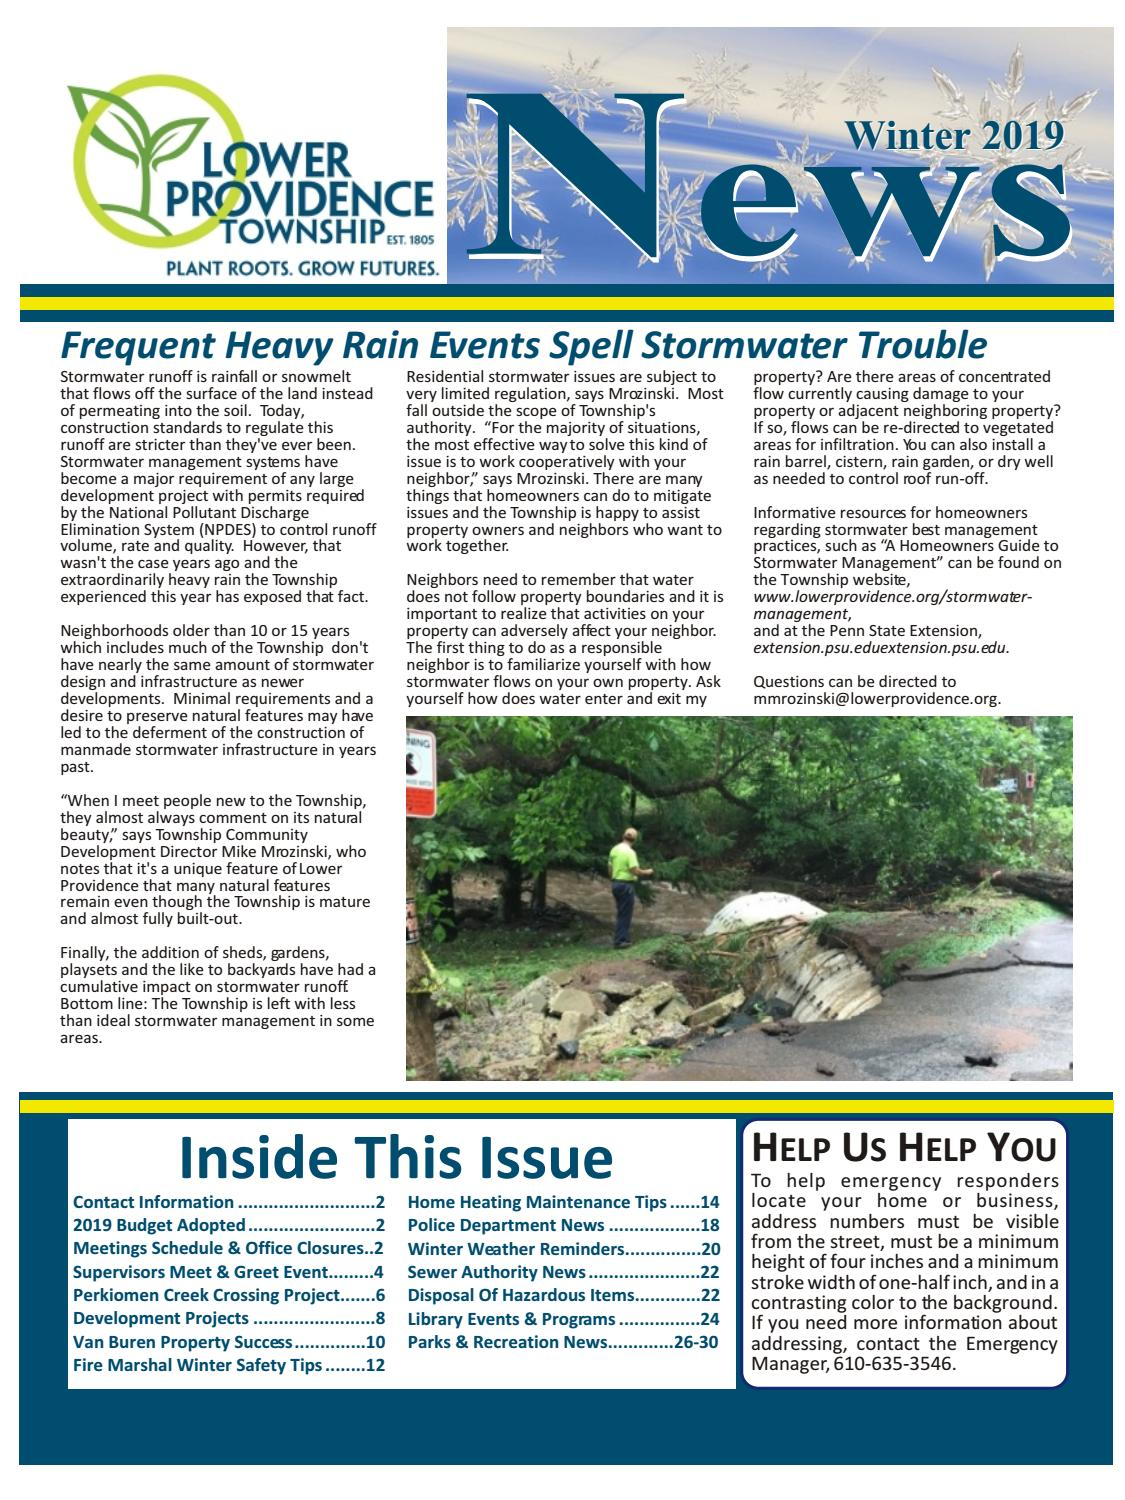 Lower Providence News Winter 2019 by Franklin Maps - issuu